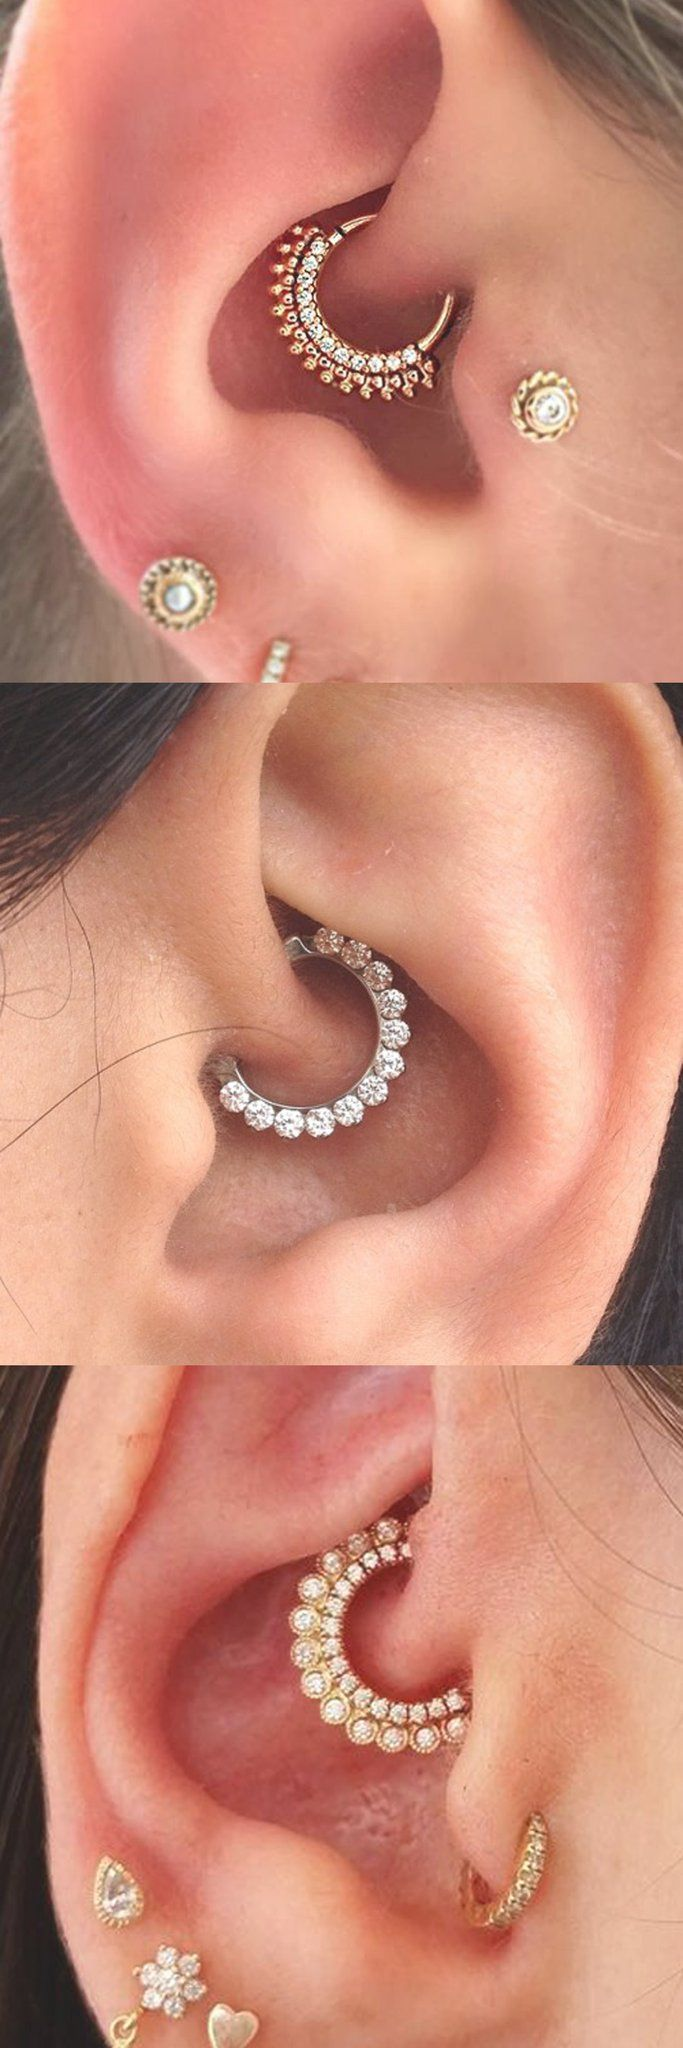 Earring piercing ideas   Free Ear Piercing Ideas  Daith piercing jewelry Daith piercing